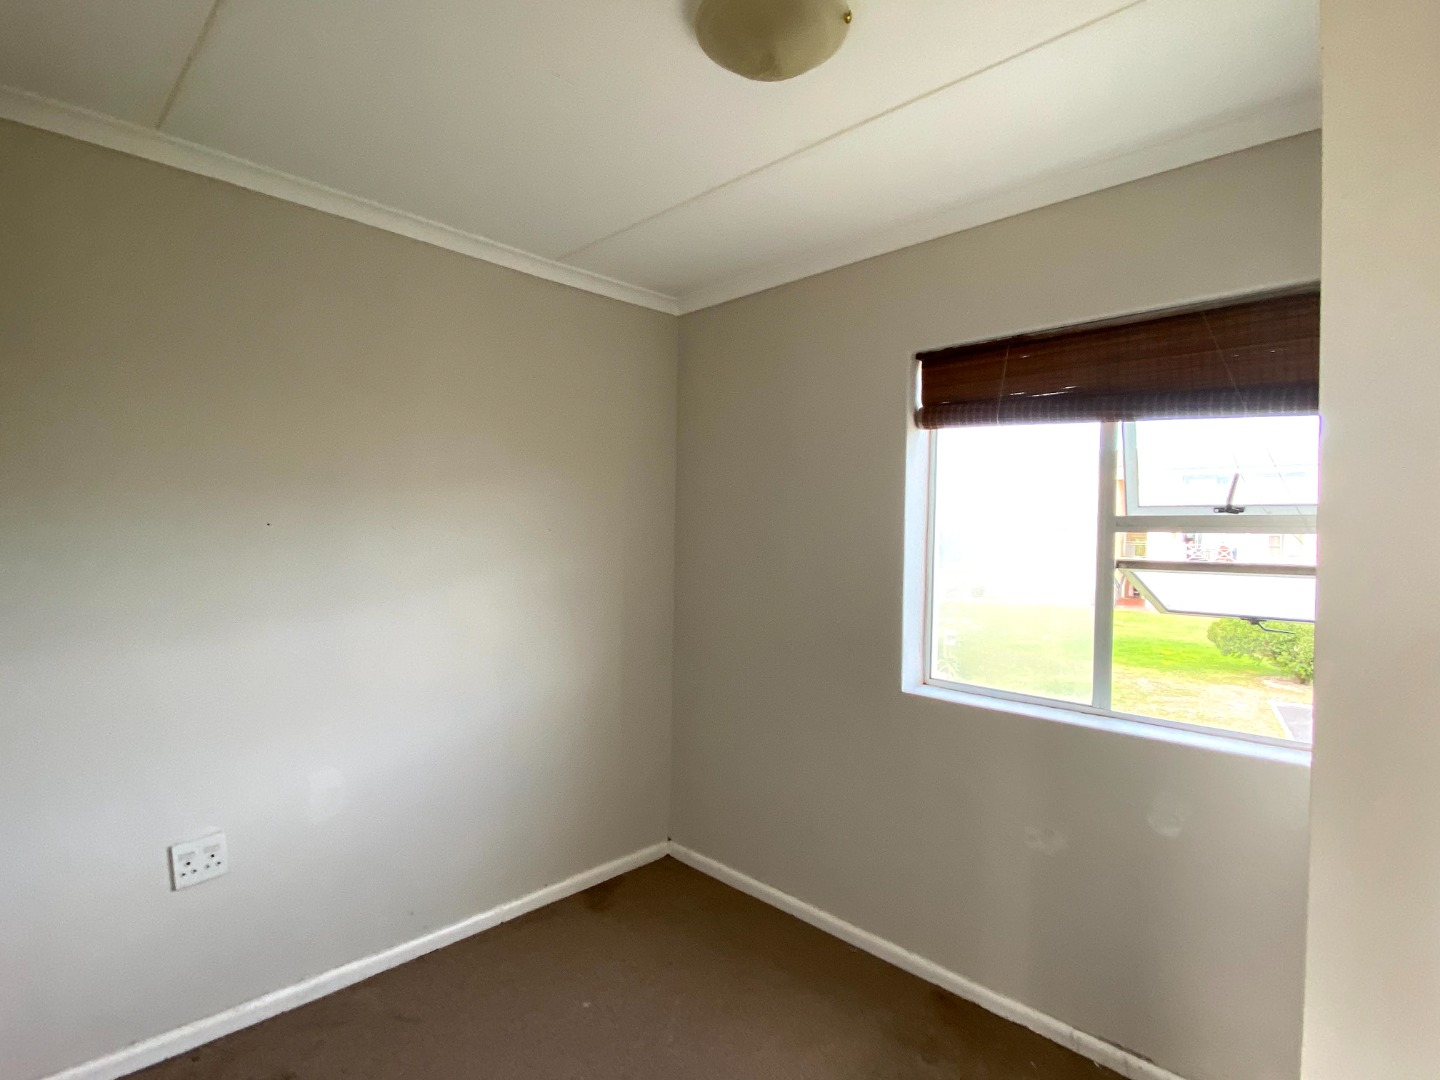 2 Bedroom Apartment / Flat For Sale in Big Bay